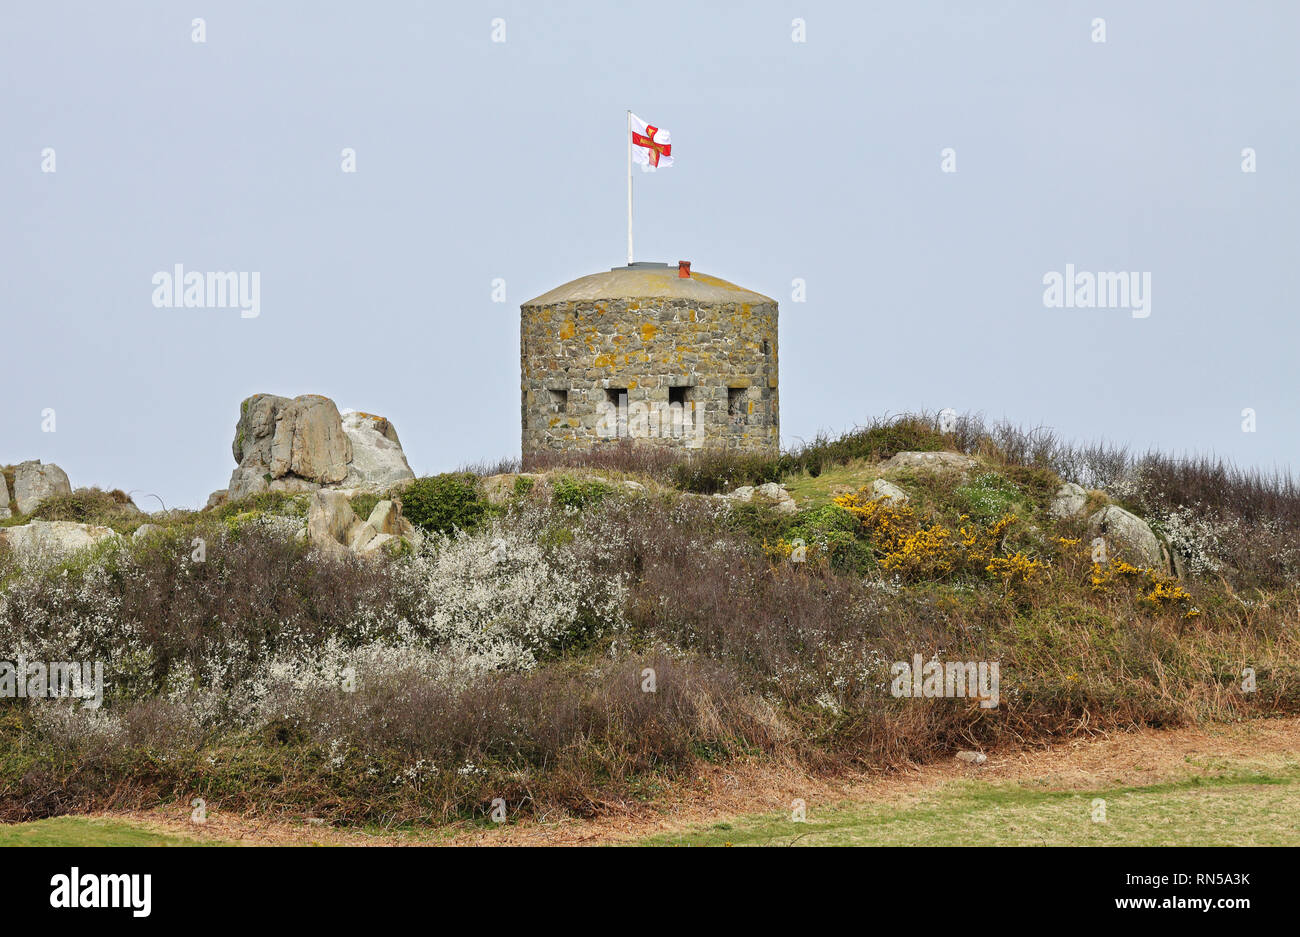 Martello fortification tower on the Northern coast of Guernsey in the English Channel Islands - Stock Image